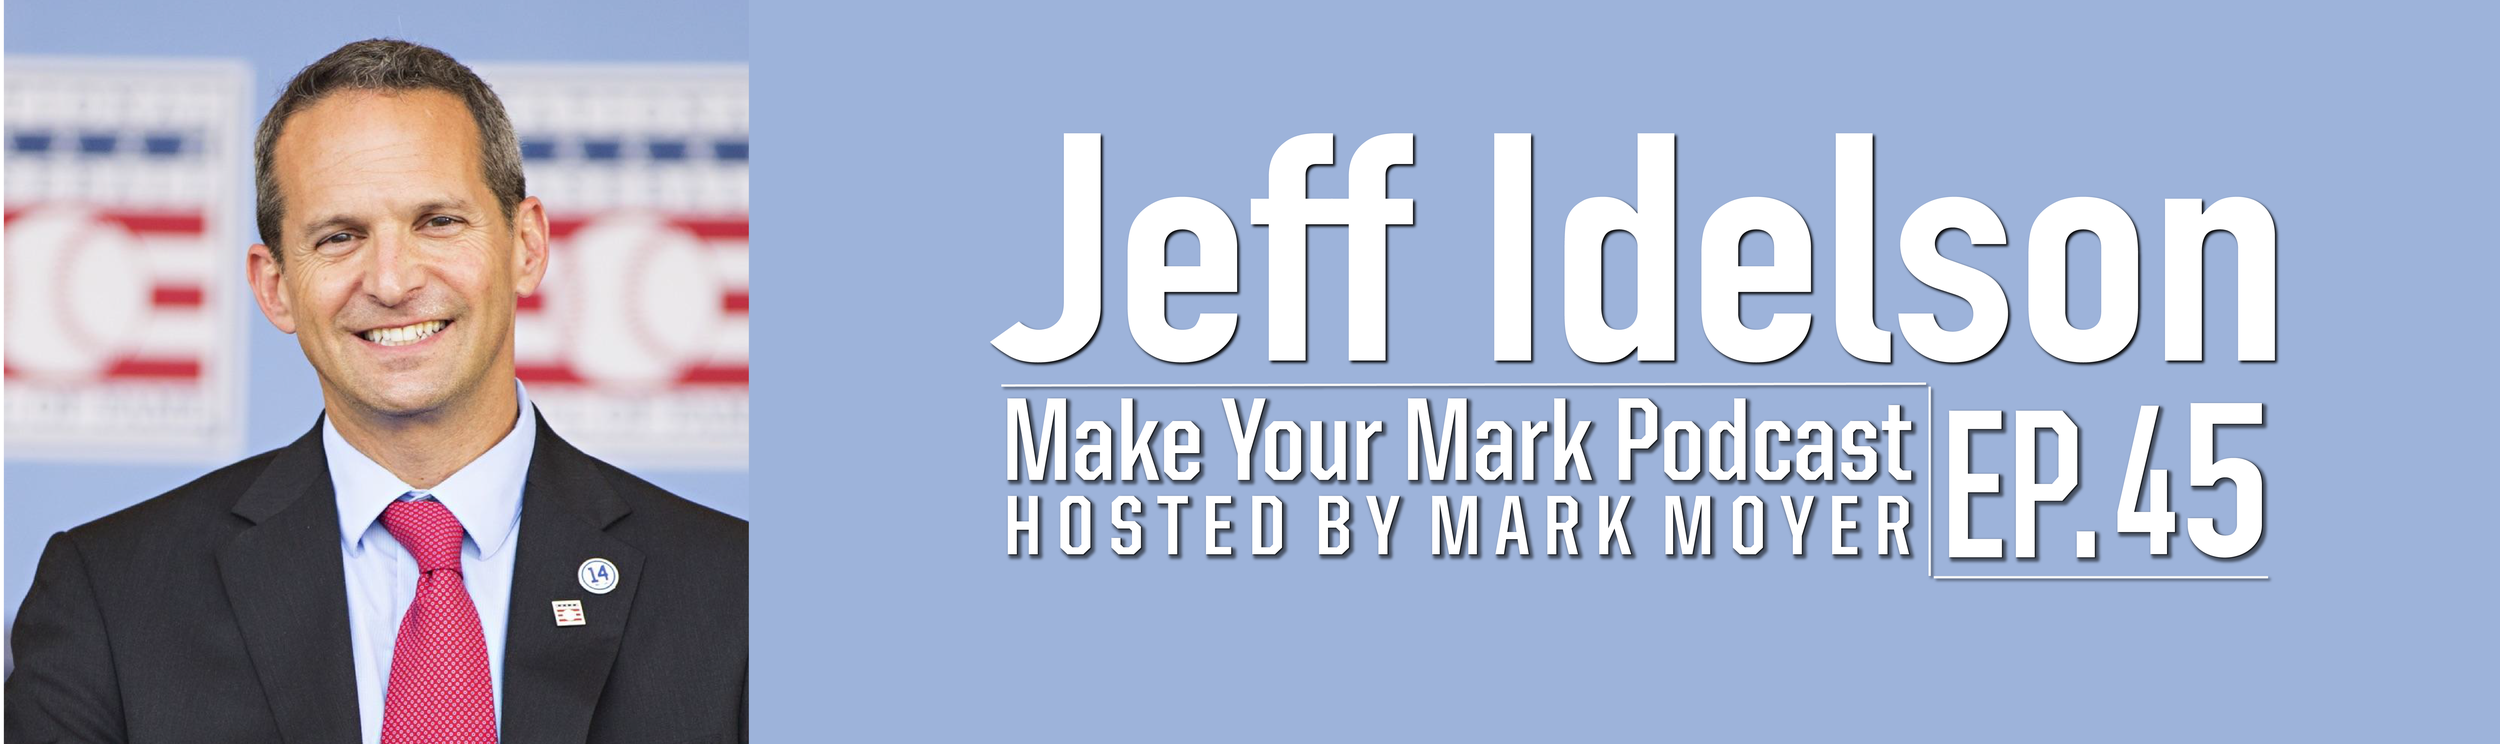 Jeffbanners-02.png